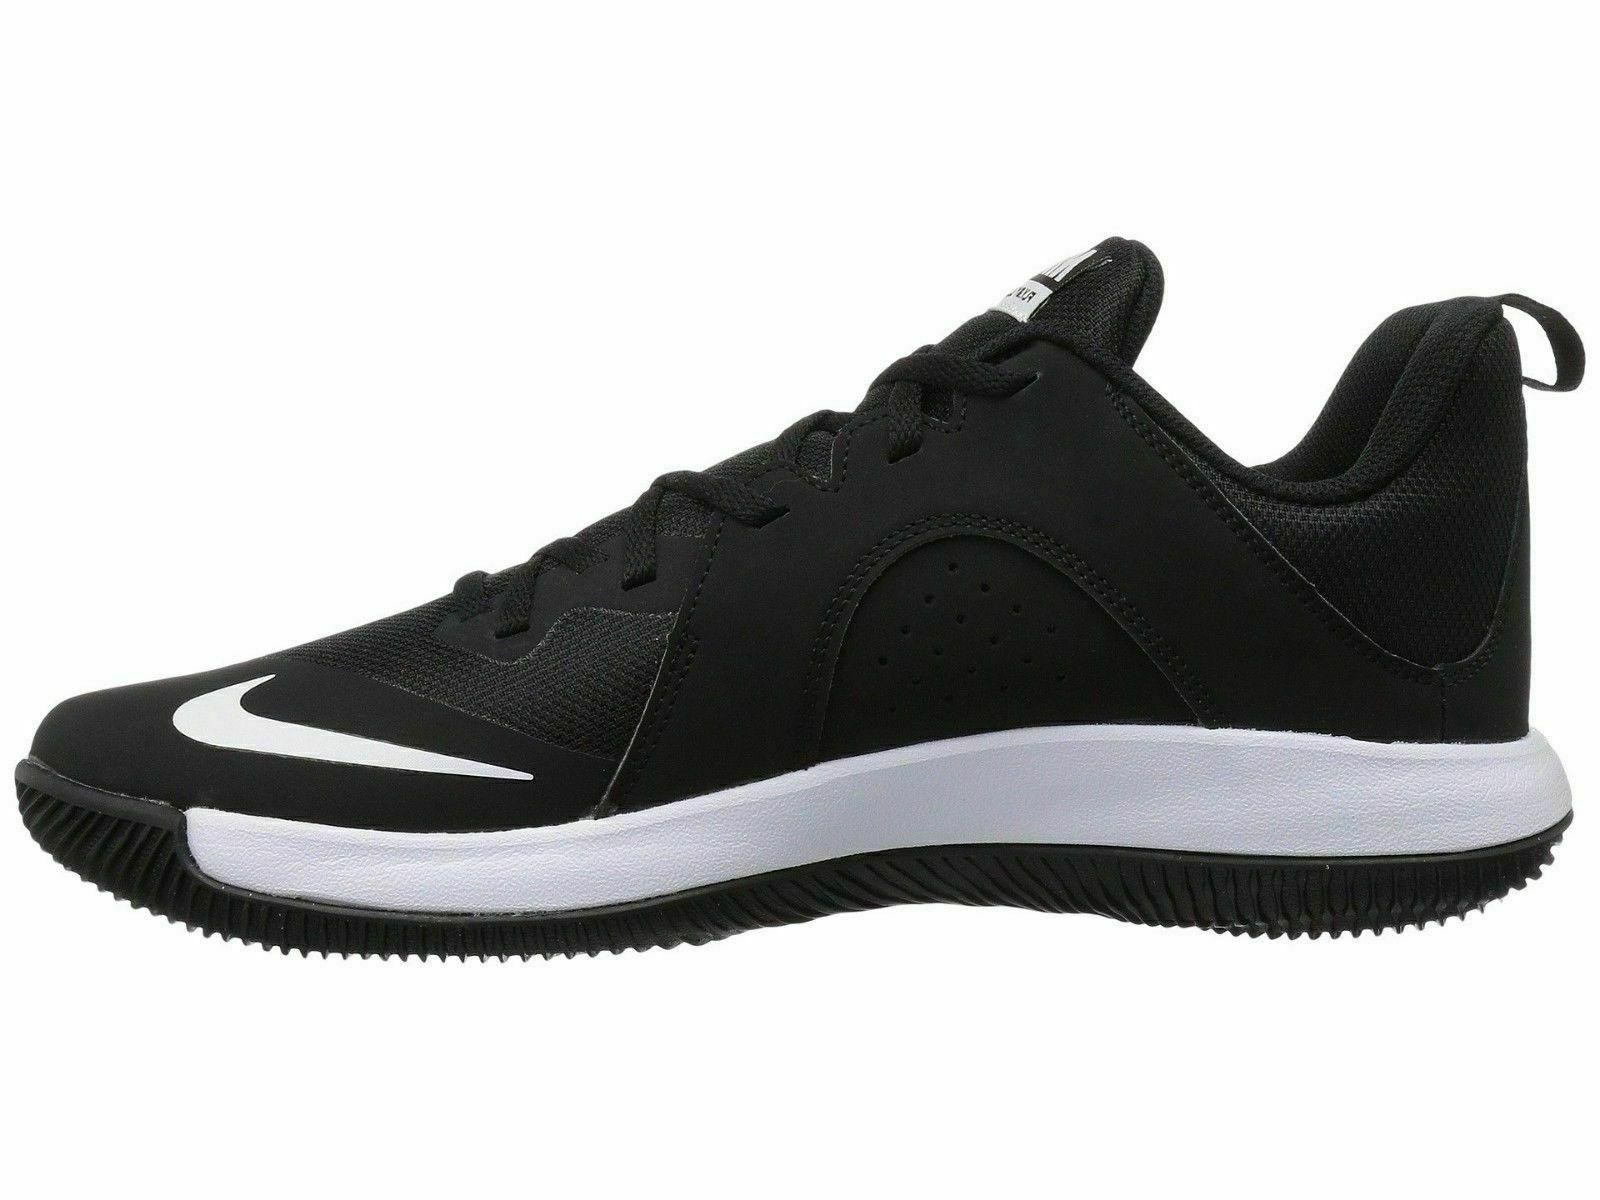 Nike Low 908973-001 Black Shoes NEW!